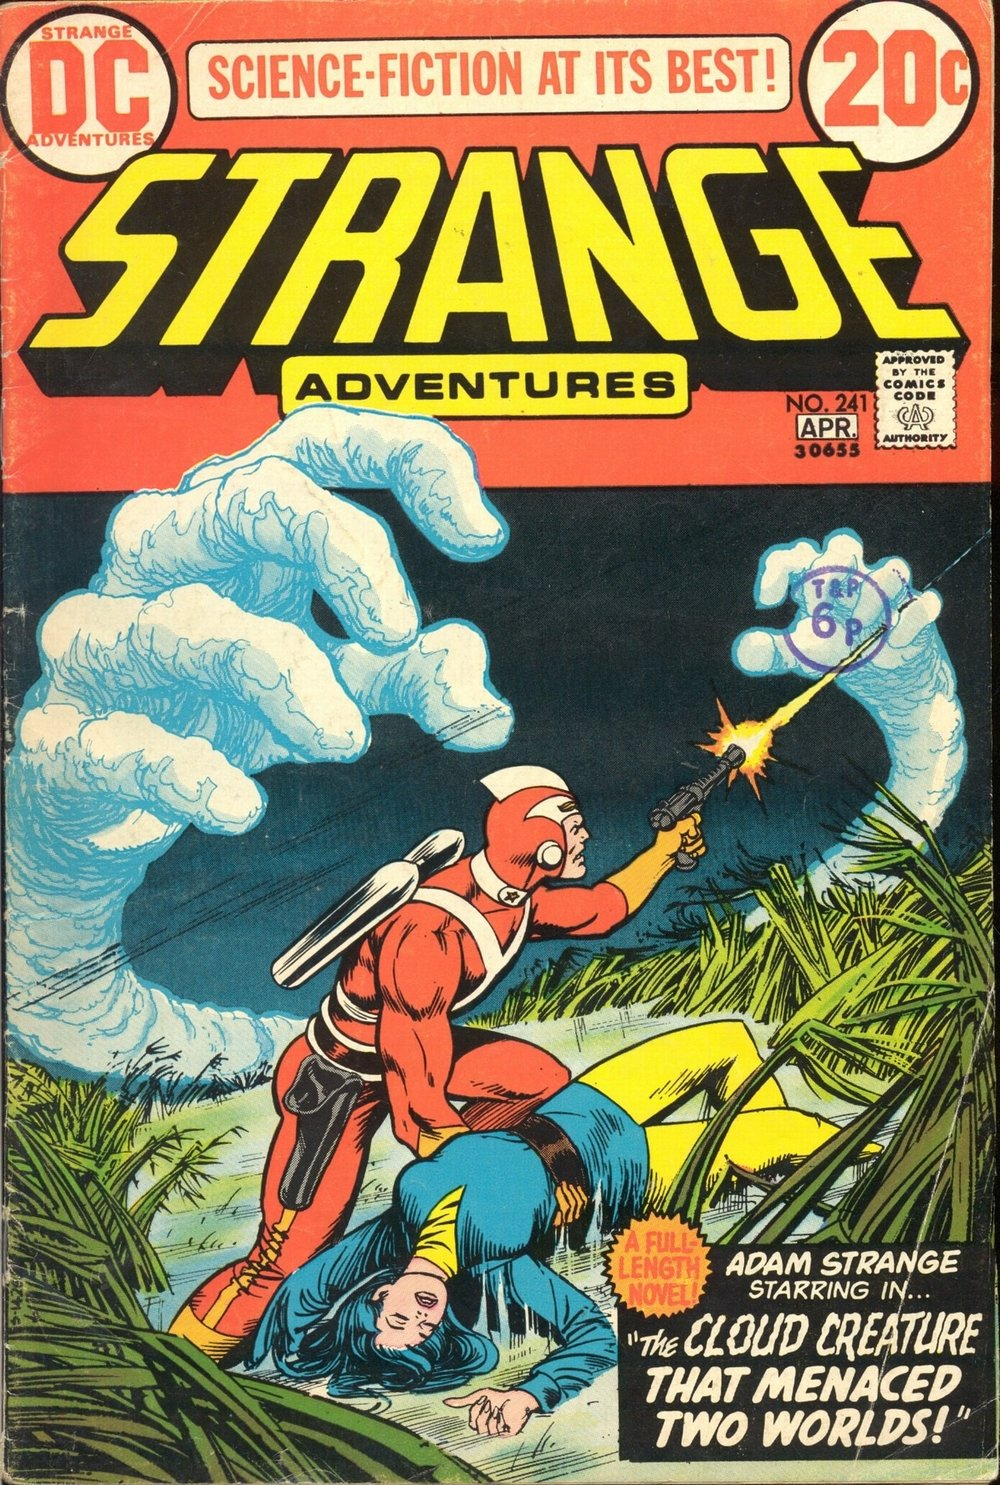 Strange Adventures (1950) #241, cover by Nick Cardy.